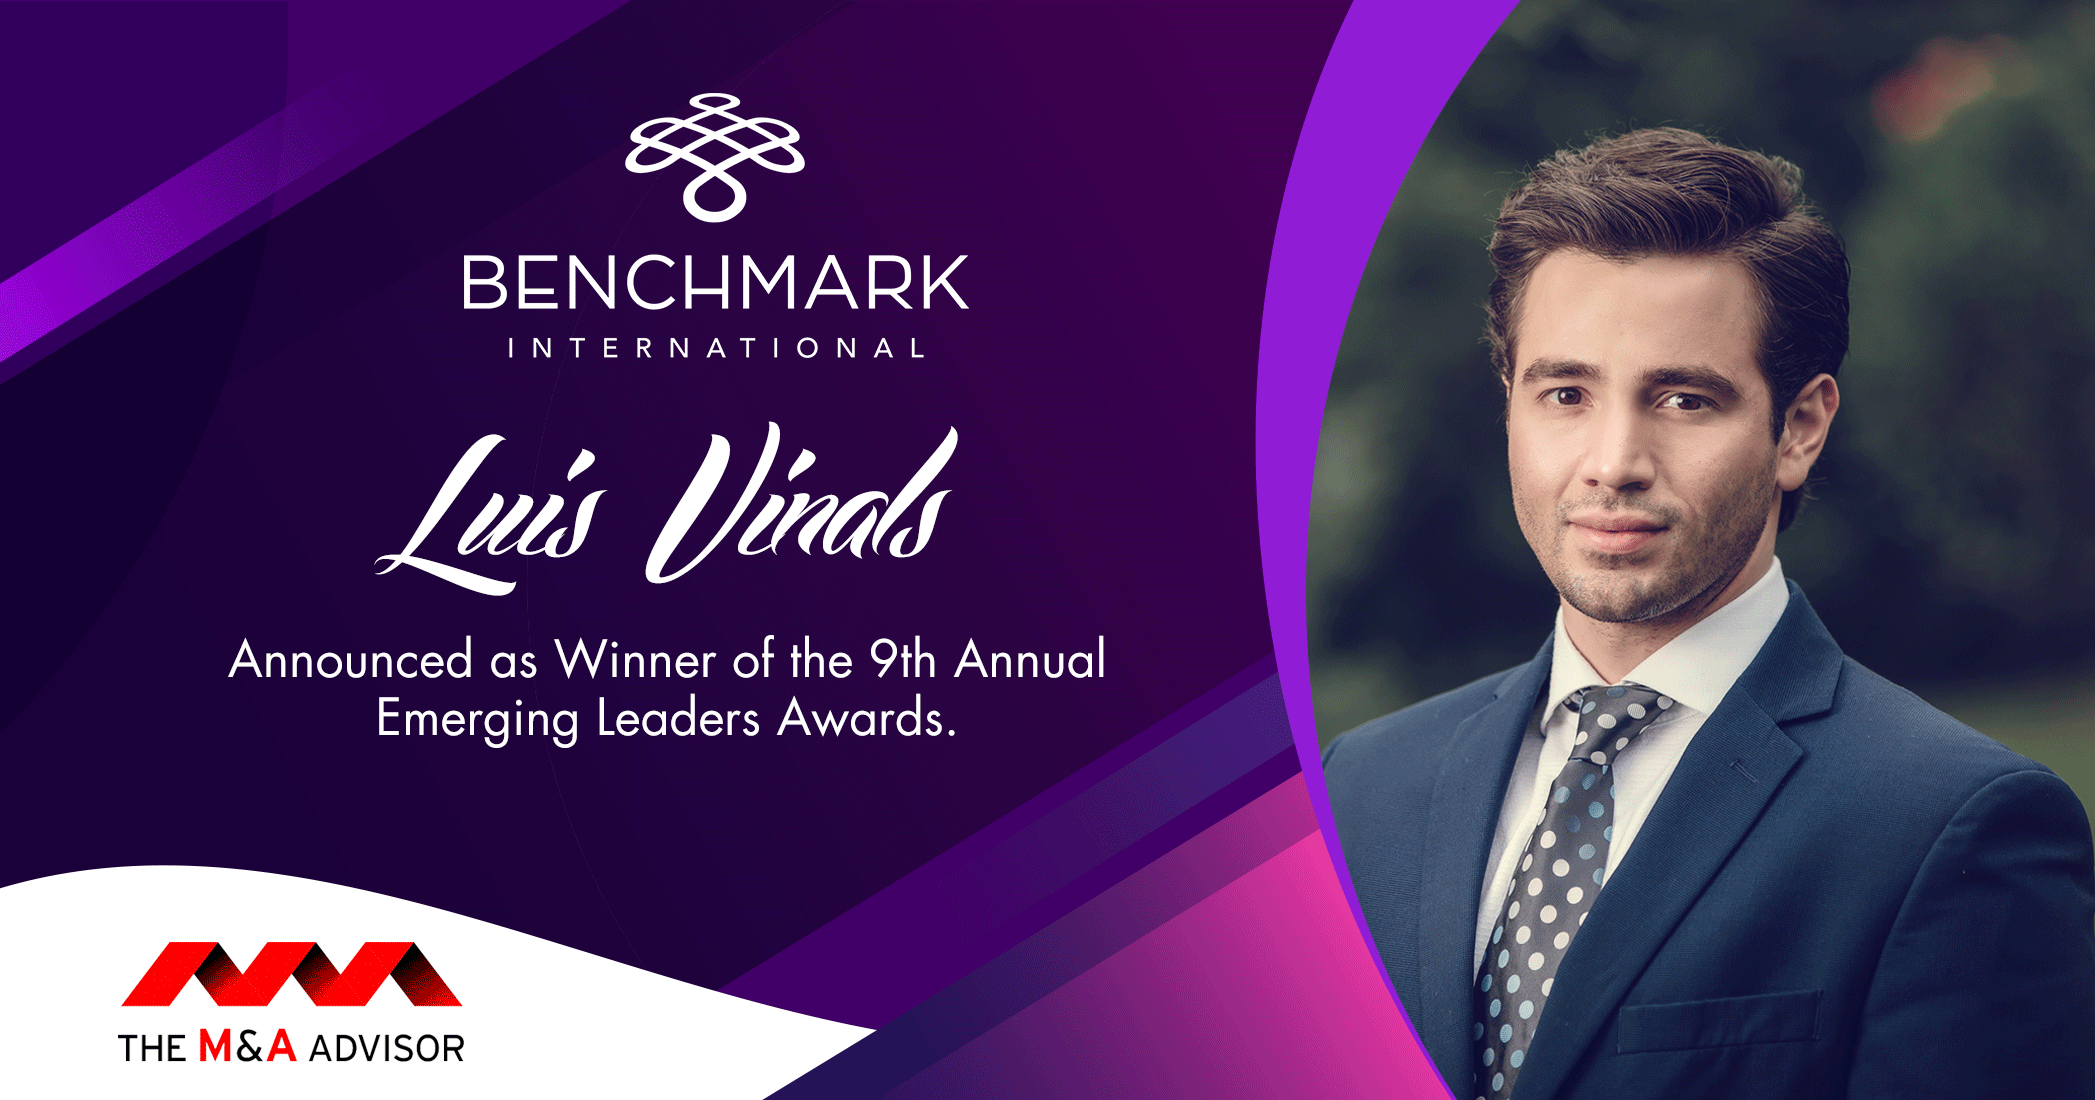 Benchmark International's Luis Vinals Announced as Winner of the 9th Annual Emerging Leaders Awards